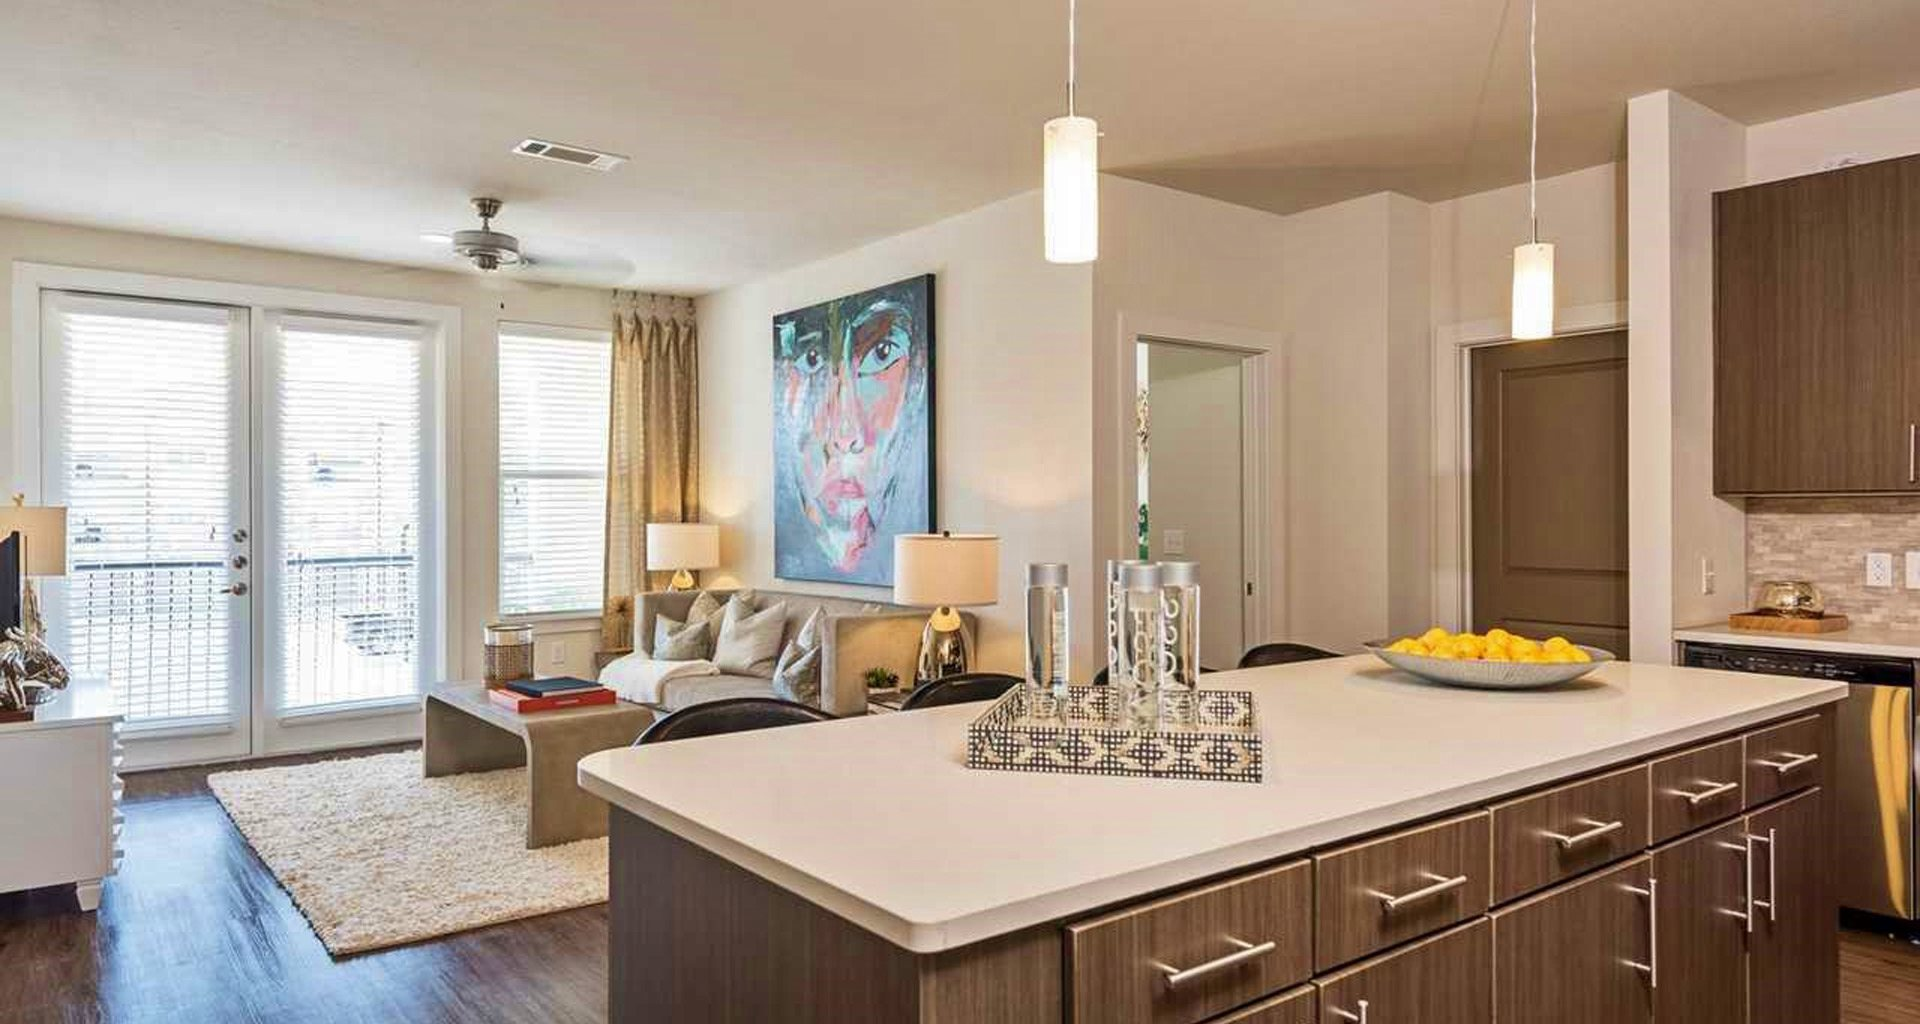 apartments_in_katy_apartment_living_room